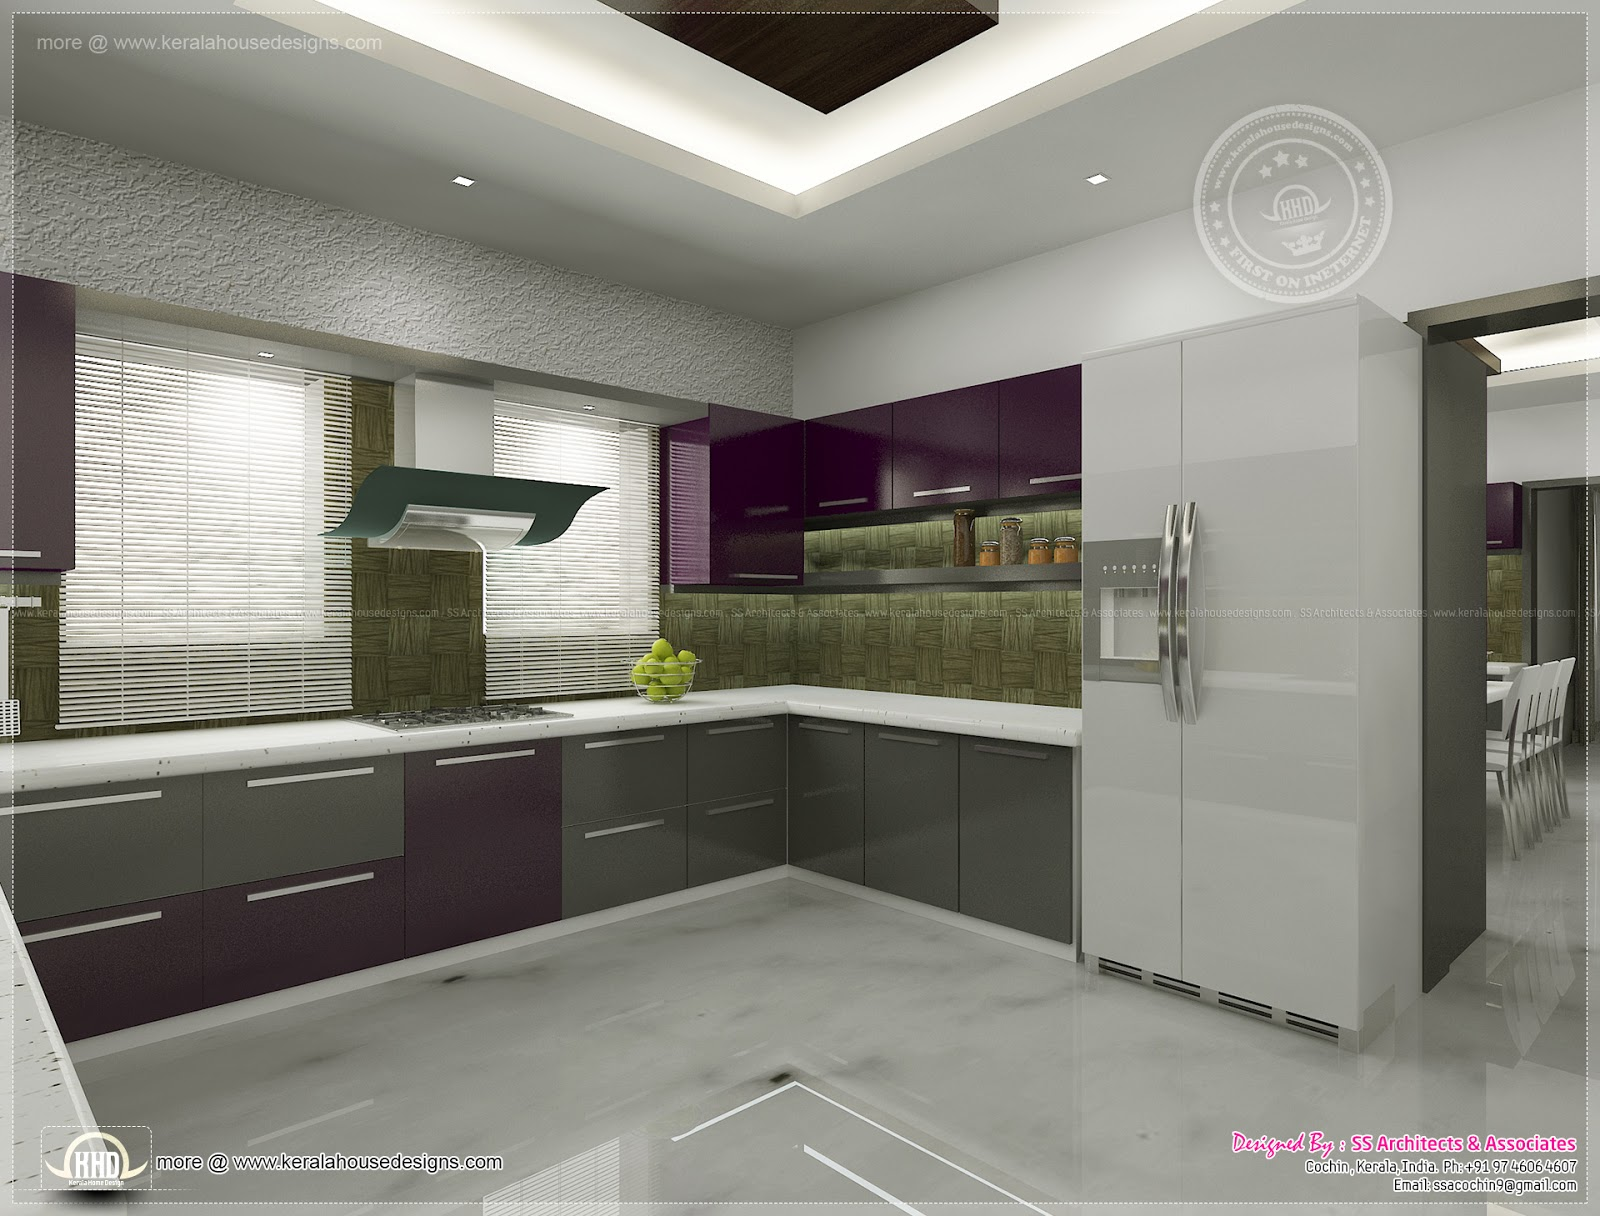 Kitchen interior views by ss architects cochin kerala Home interior design indian style